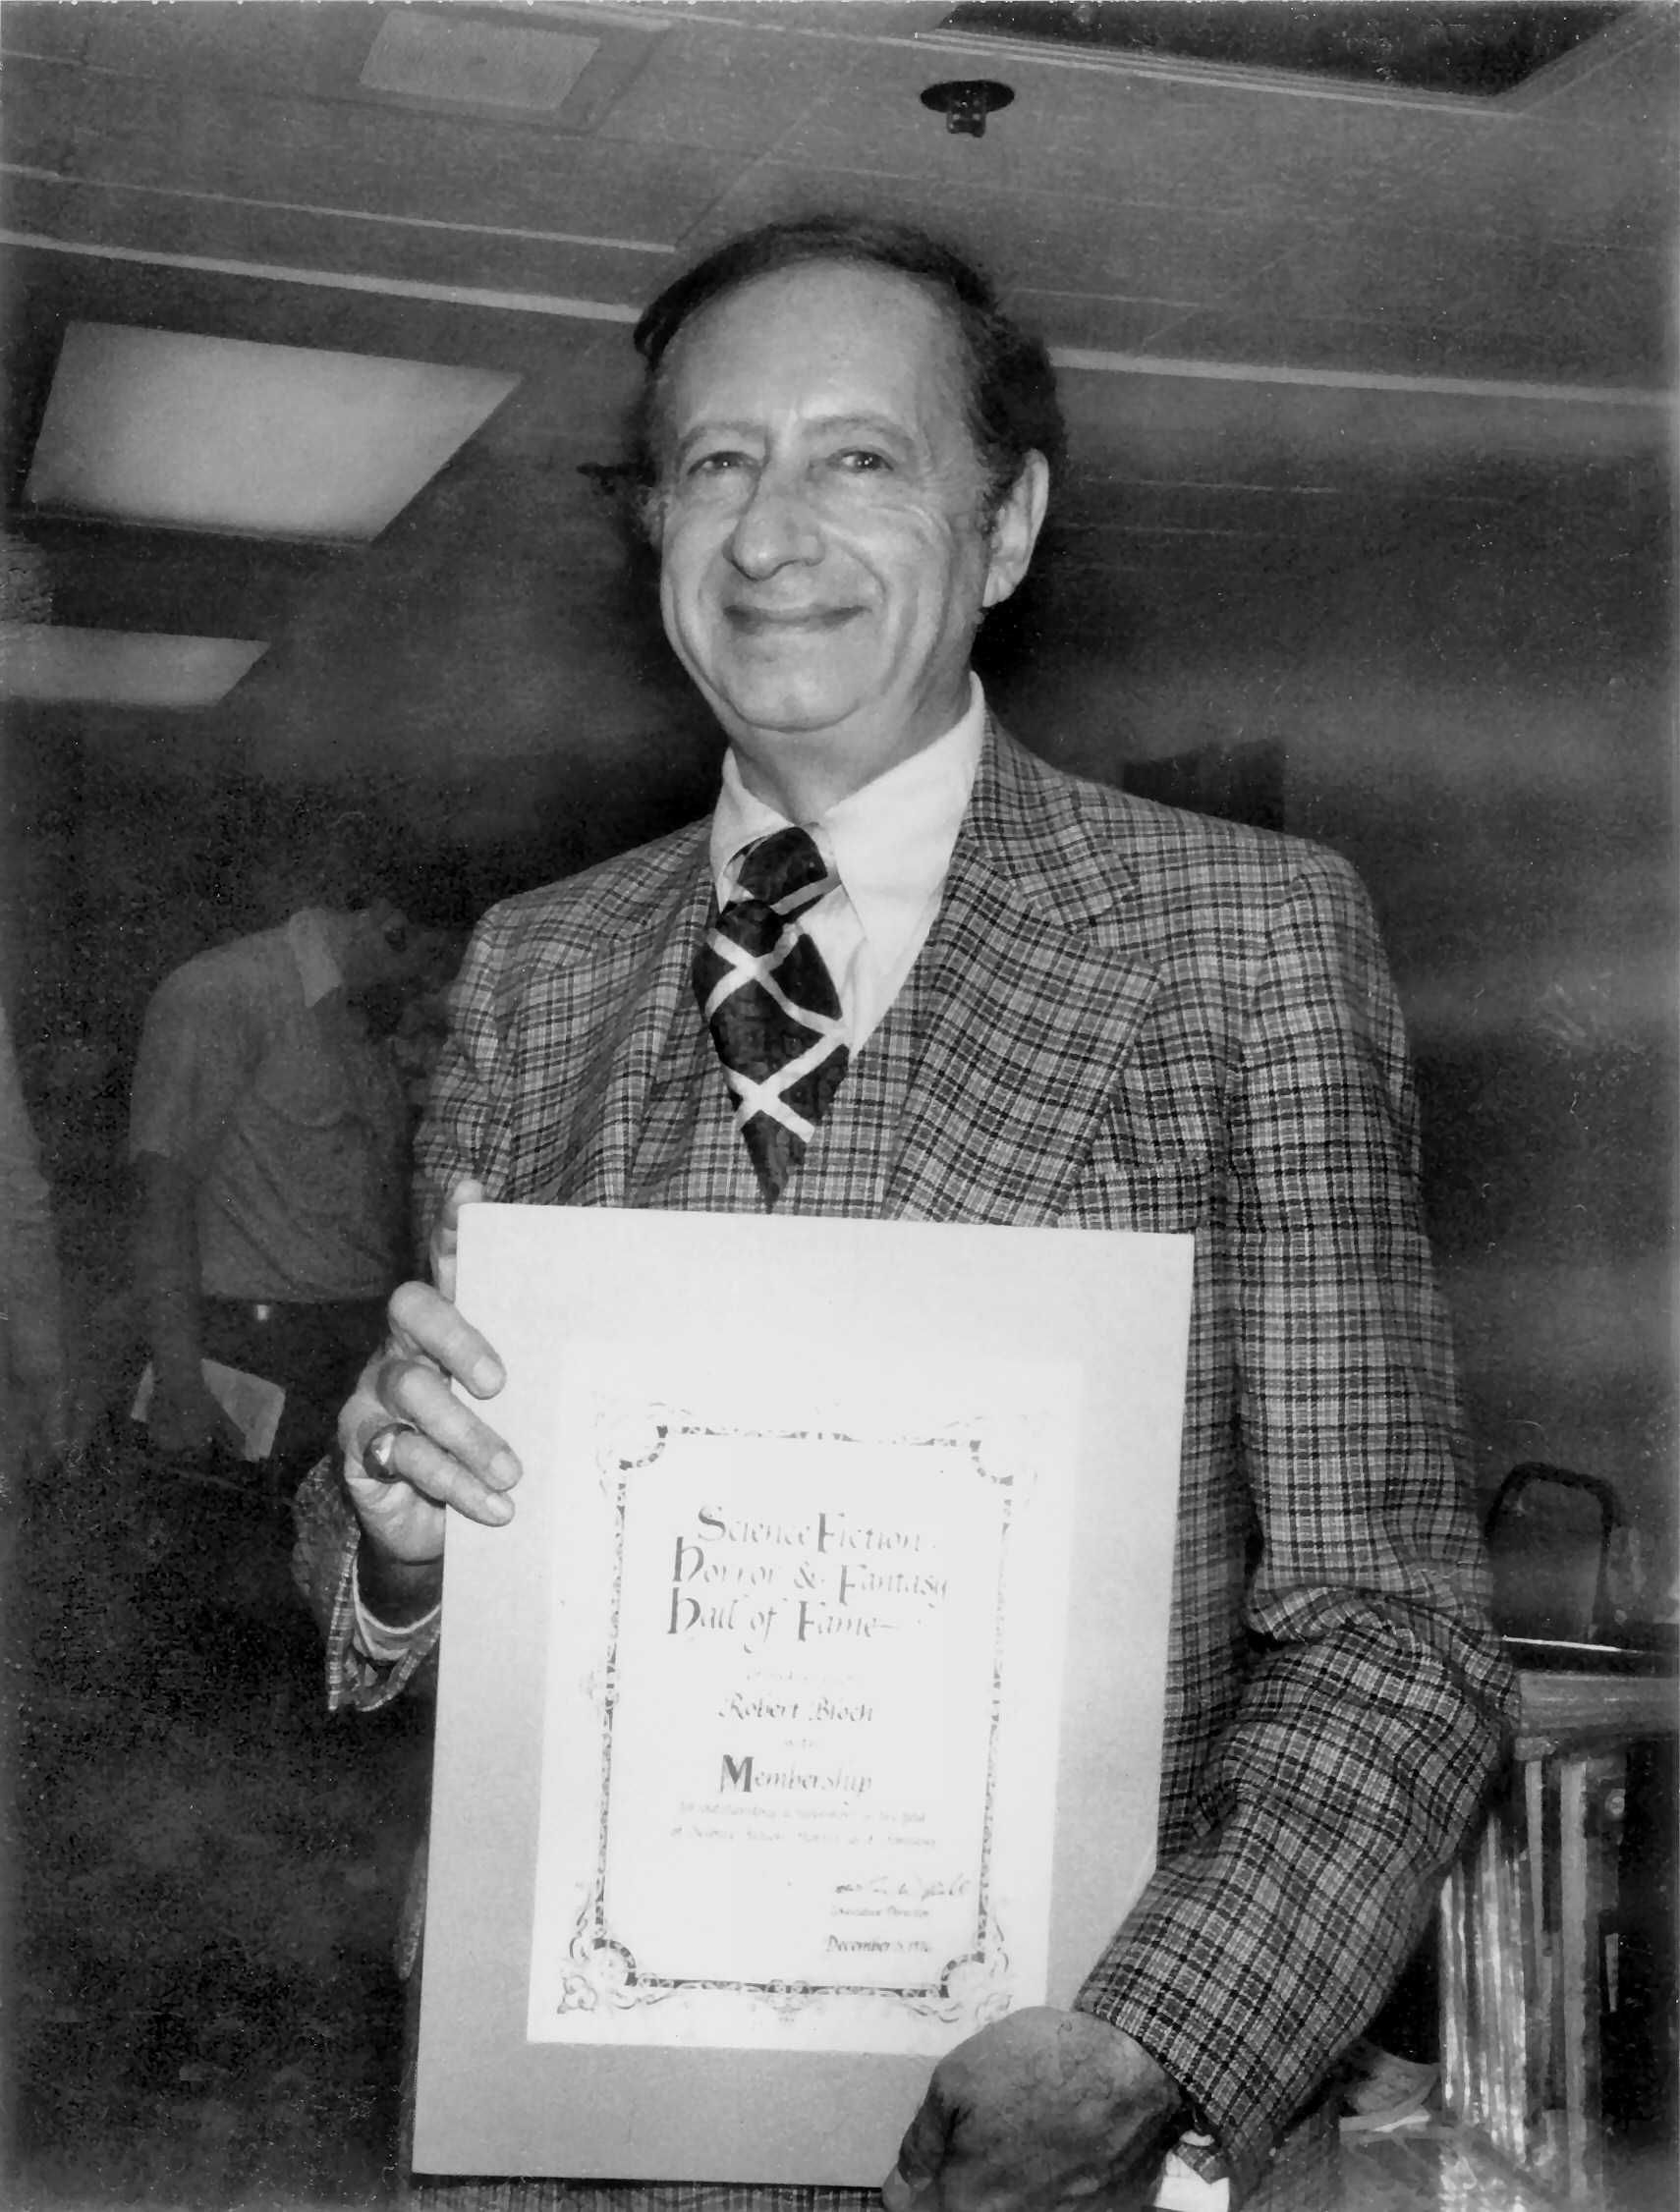 http://upload.wikimedia.org/wikipedia/commons/9/97/Robert_Bloch_with_His_Award.jpg